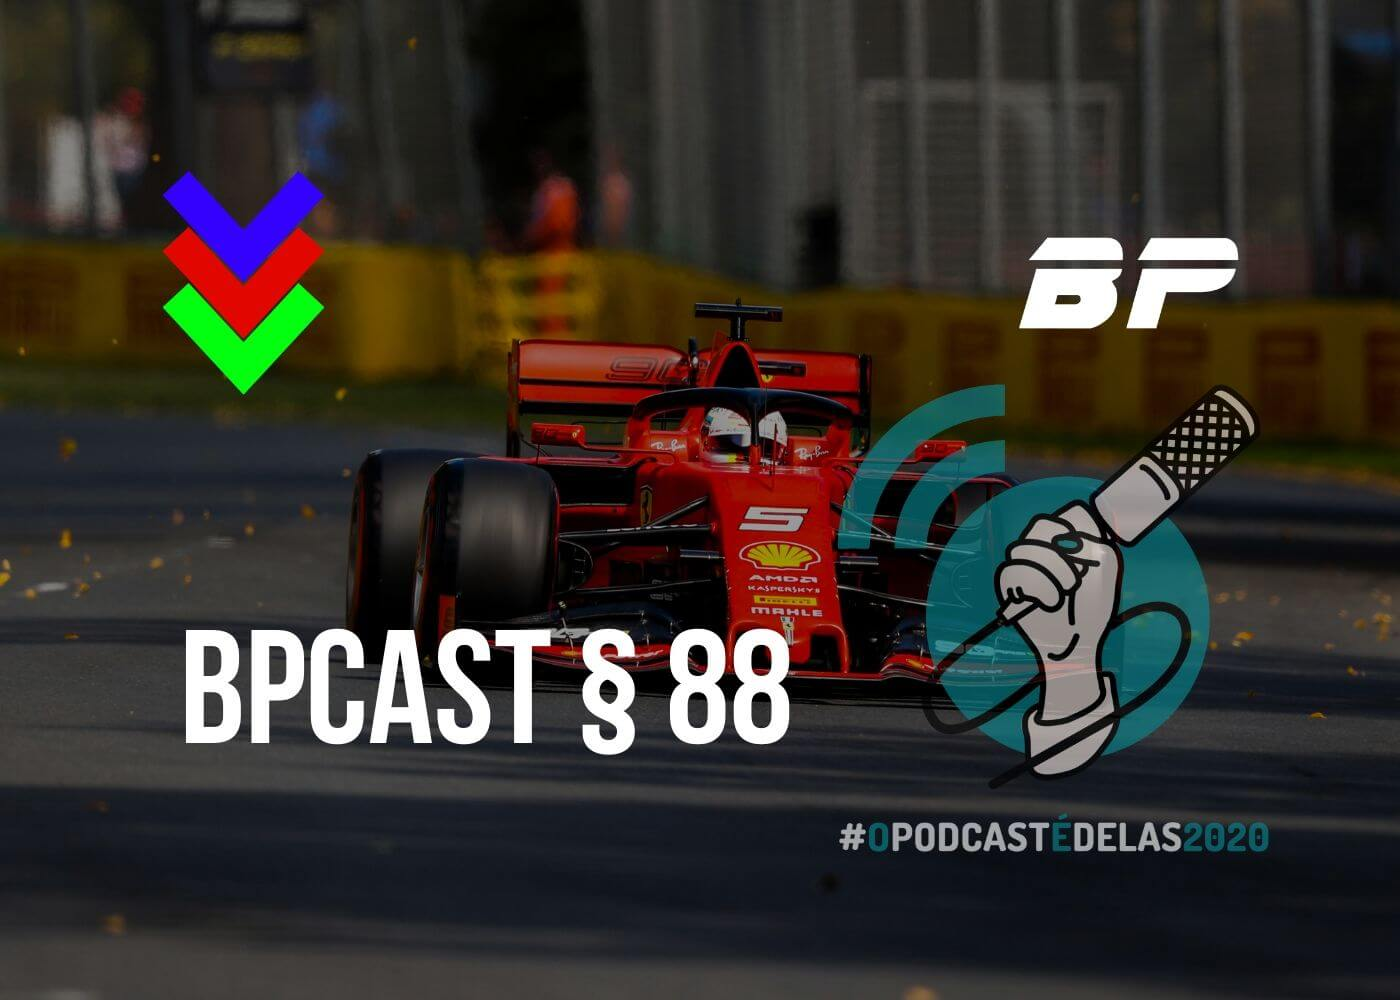 Photo of BPCast § 88 | Aquela resenha sobre o preview do GP da Austrália de Fórmula 1 de 2020 – #OPodcastÉDelas2020